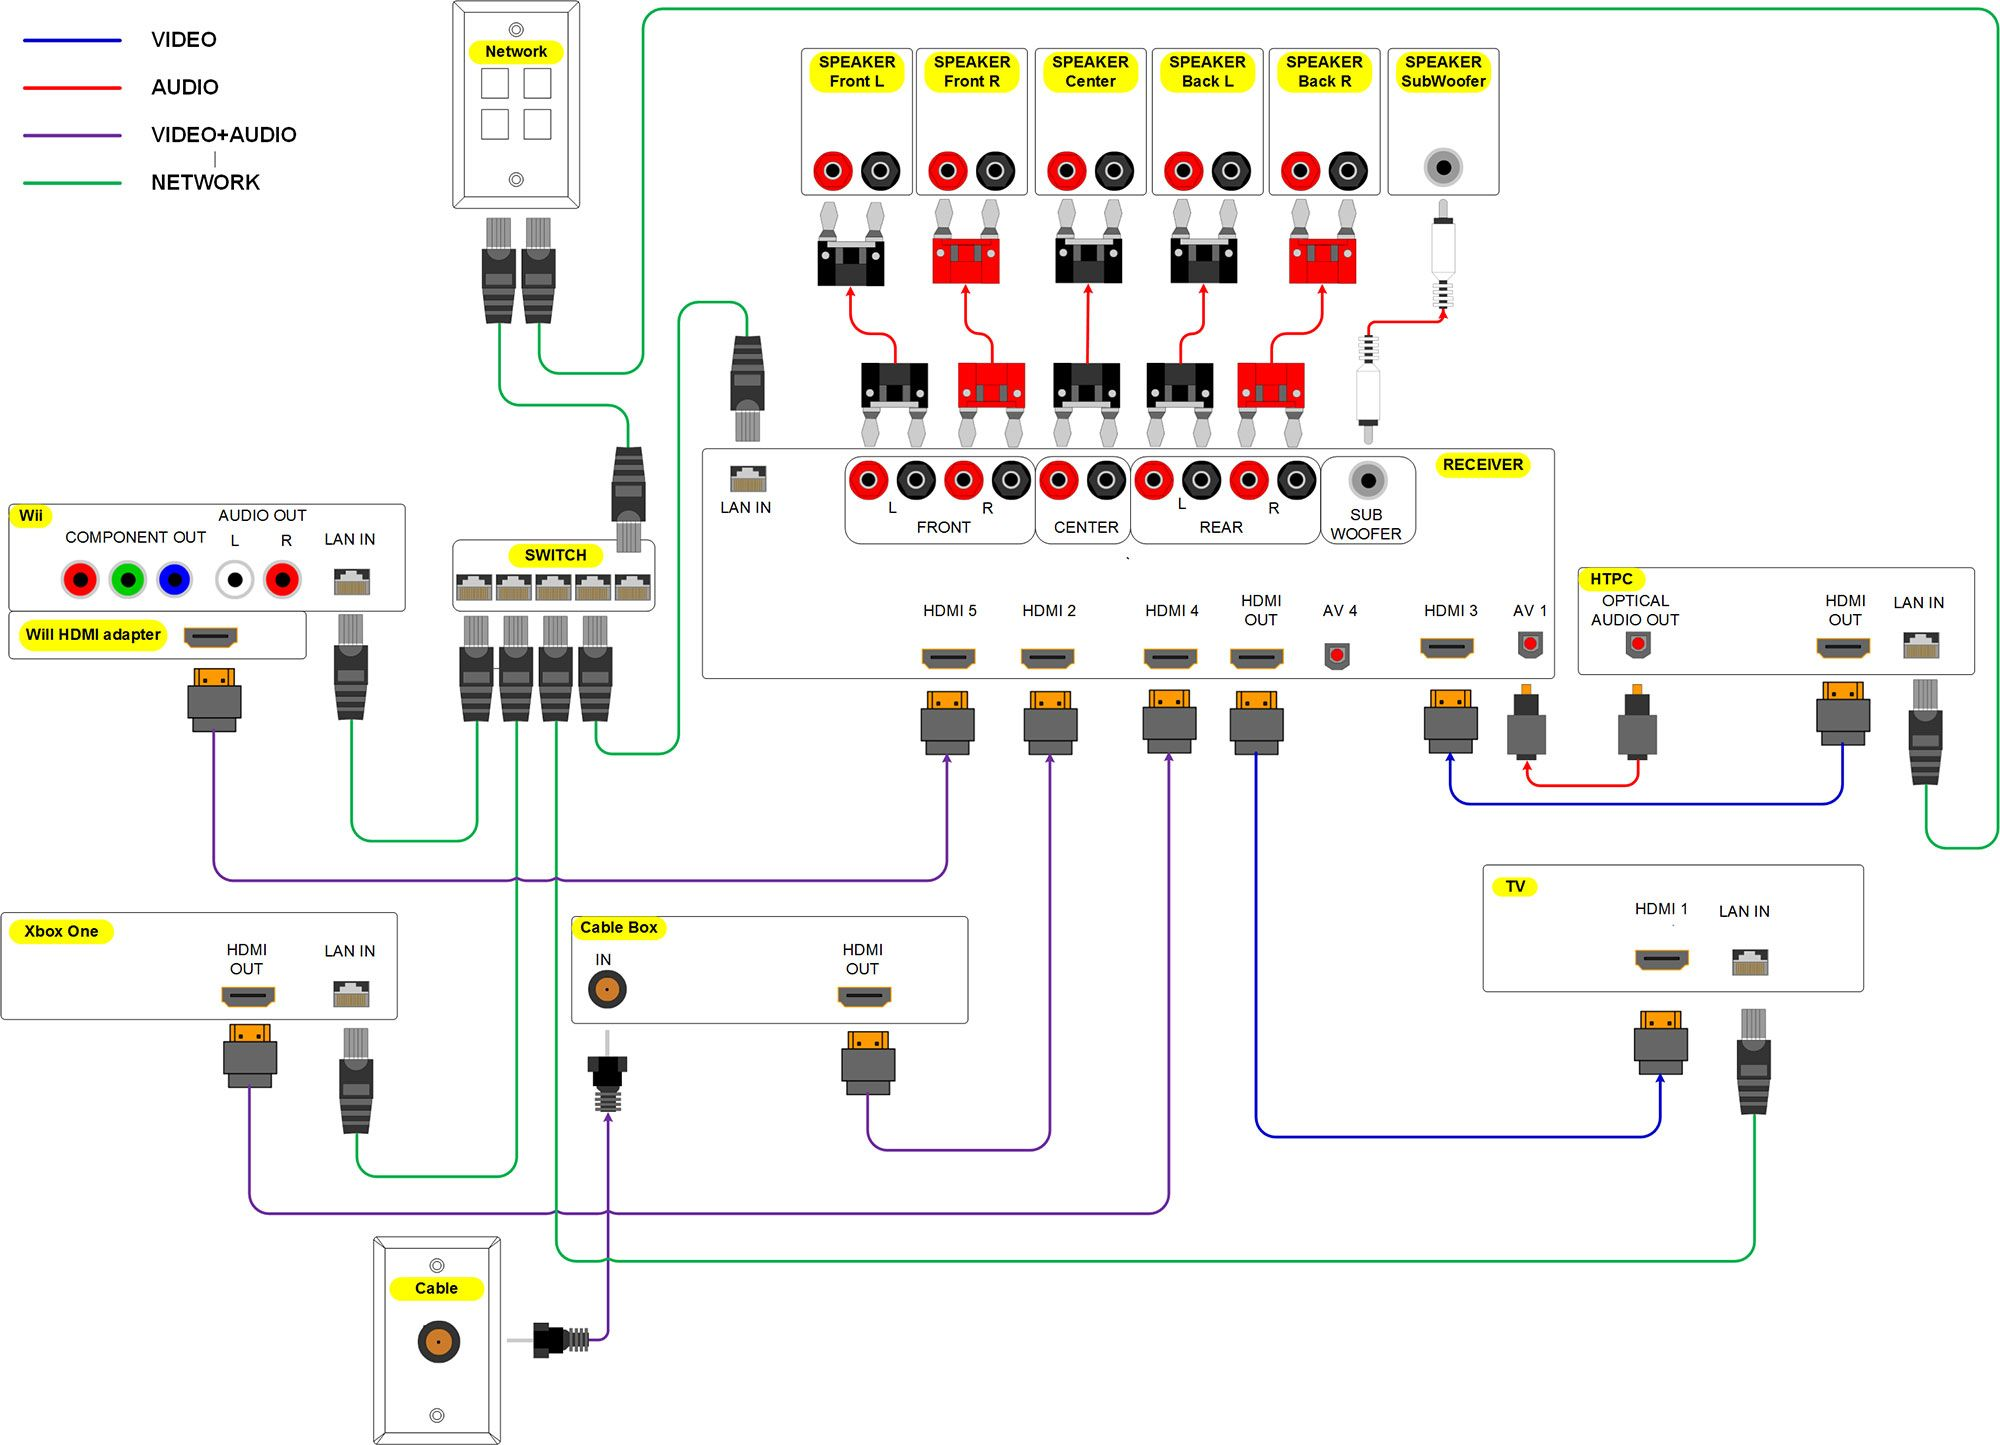 hdmi audio wiring diagram wiring diagram autovehicle hdmi audio wire diagram wiring diagramsbasic home theater connection [ 2000 x 1445 Pixel ]